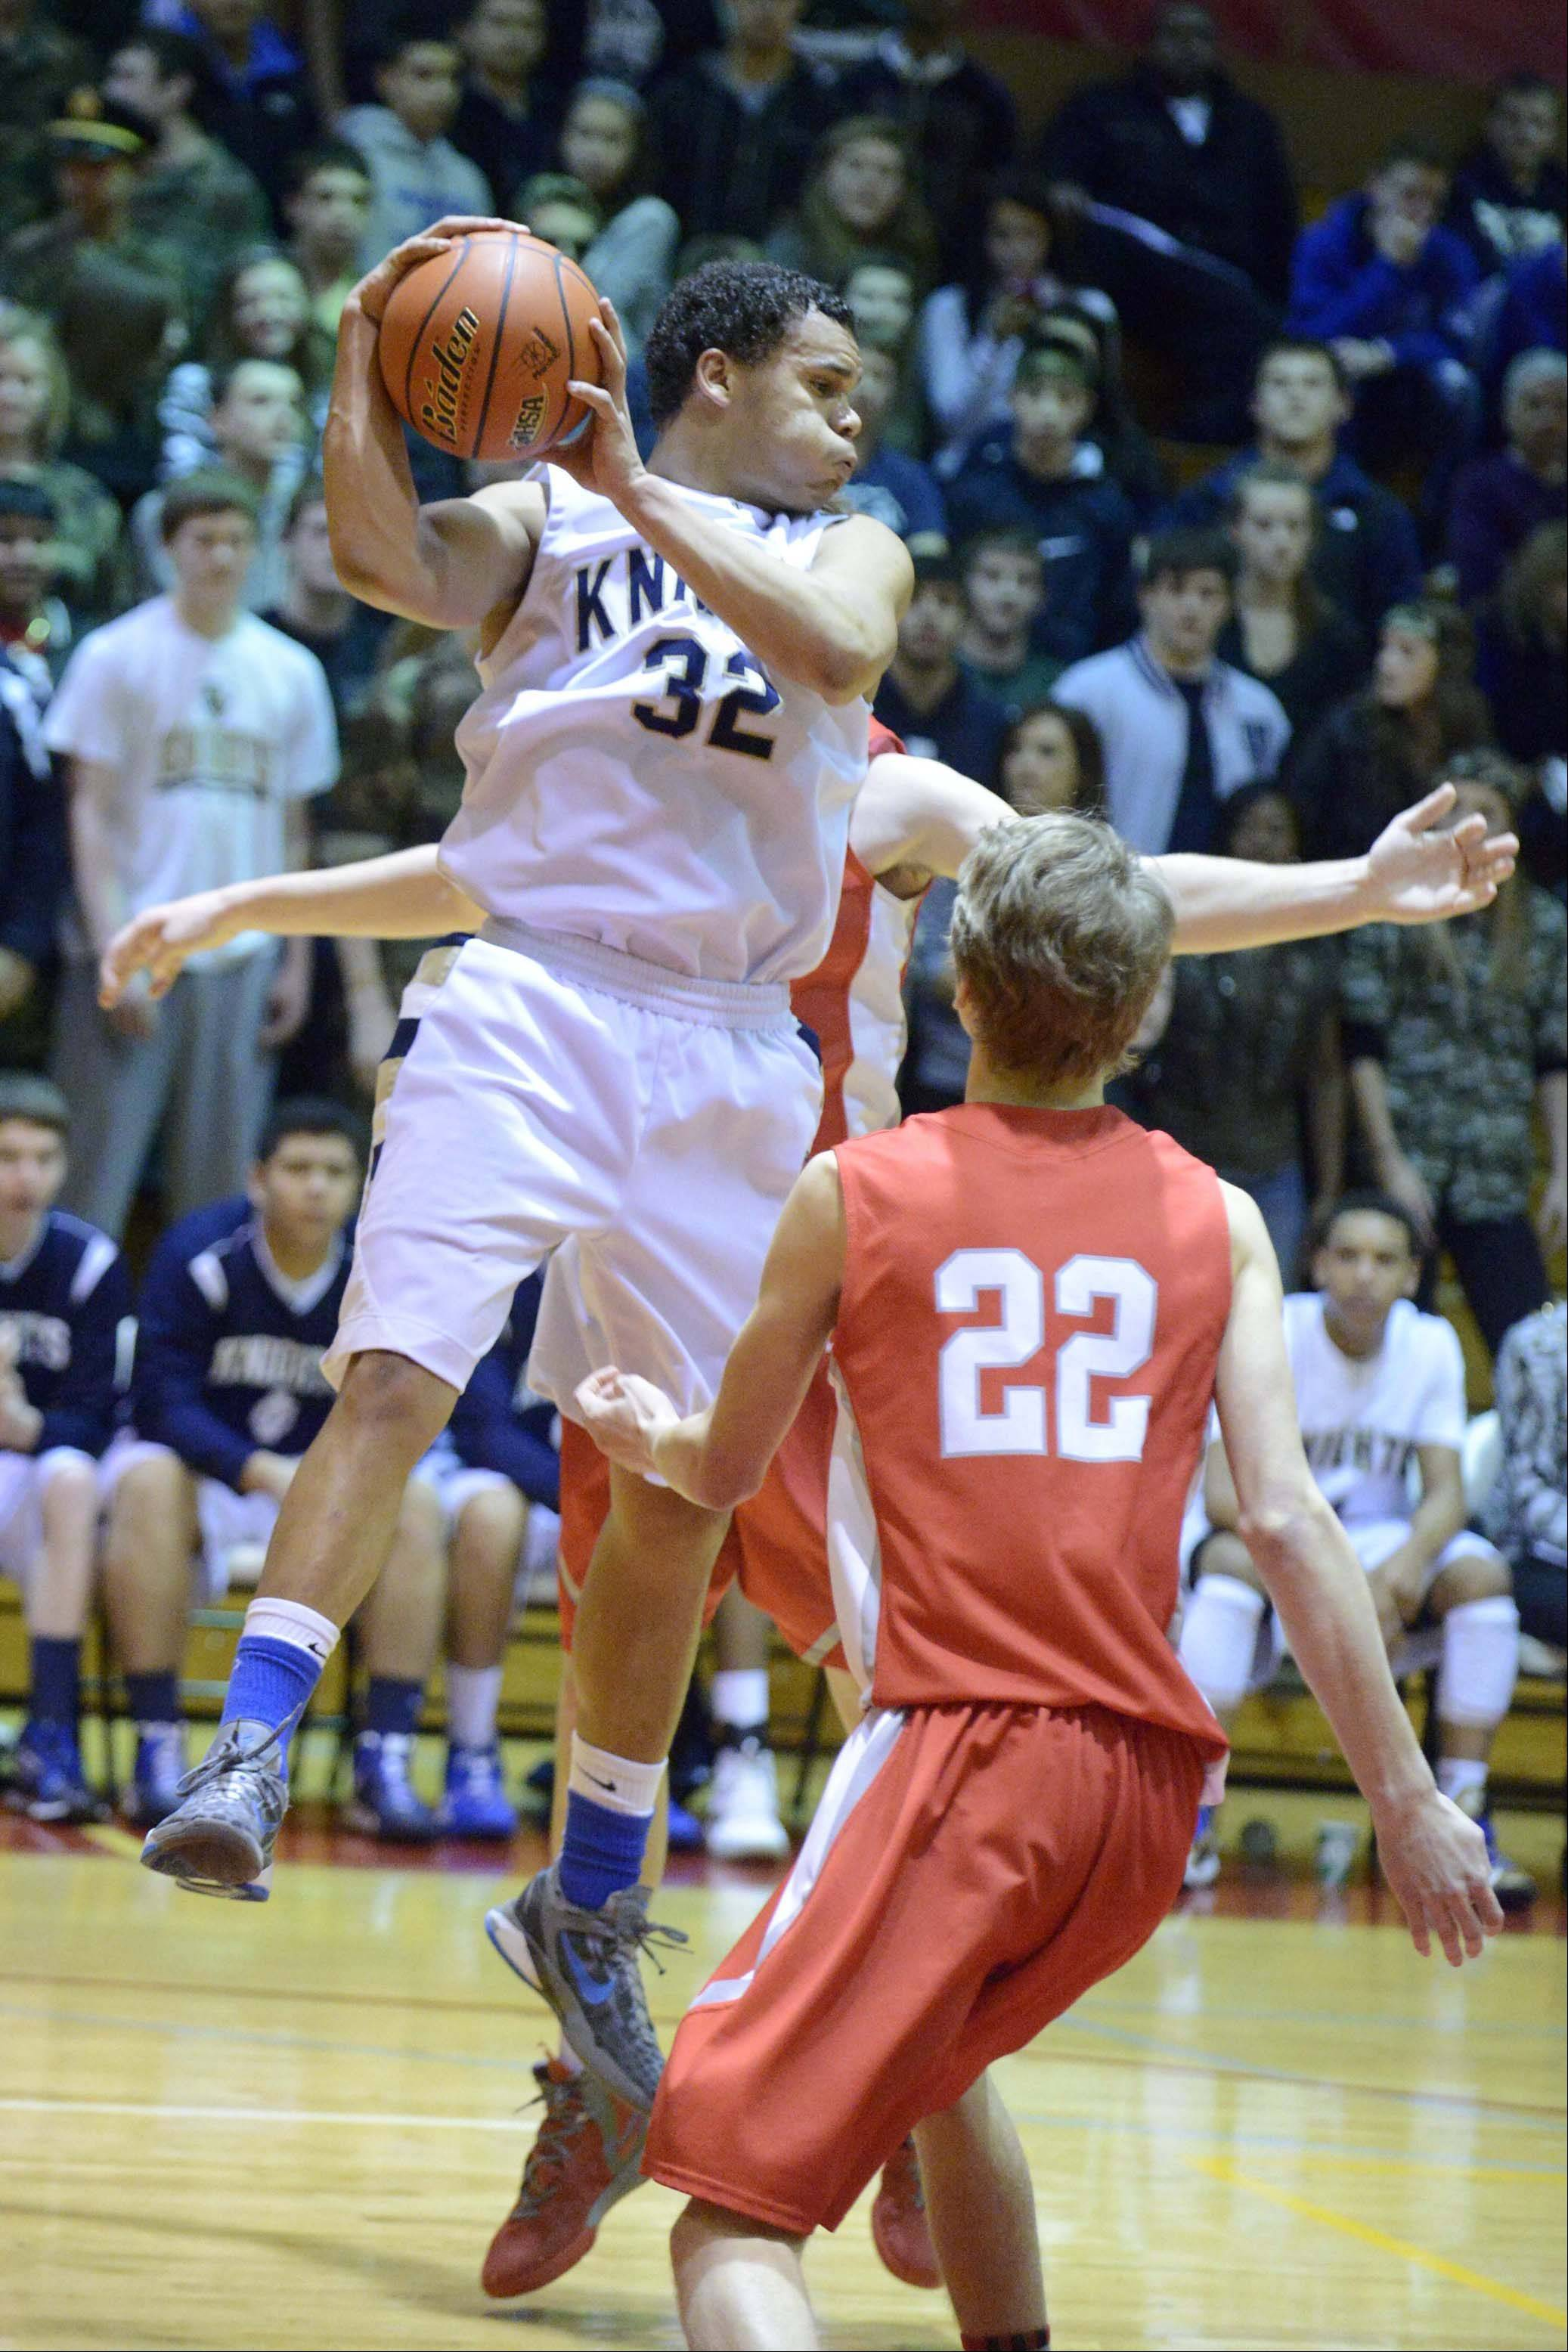 Images from the Aurora Christian vs. Immaculate Conception boys basketball game Friday, February 22, 2013 in Westmont.